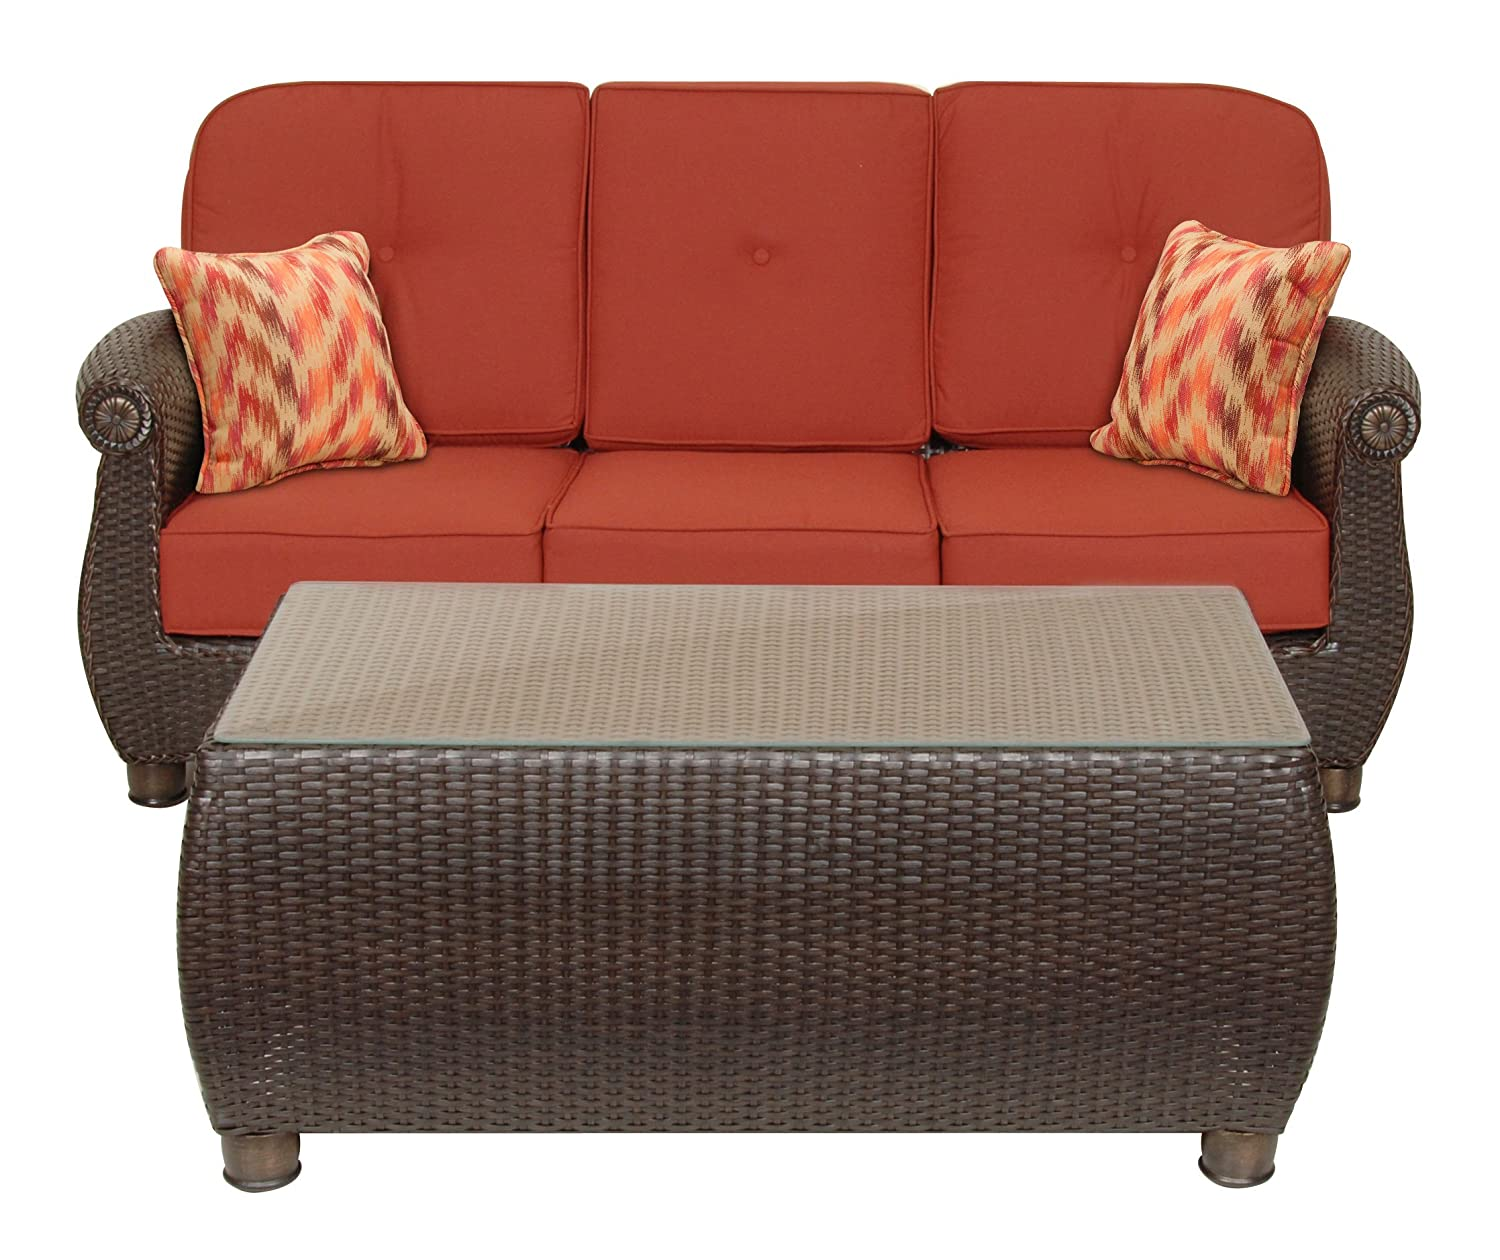 Amazon.com : La Z Boy Outdoor Breckenridge Resin Wicker Patio Furniture  Sofa With Pillows And Coffee Table Set (Brick Red) With All Weather  Sunbrella ...